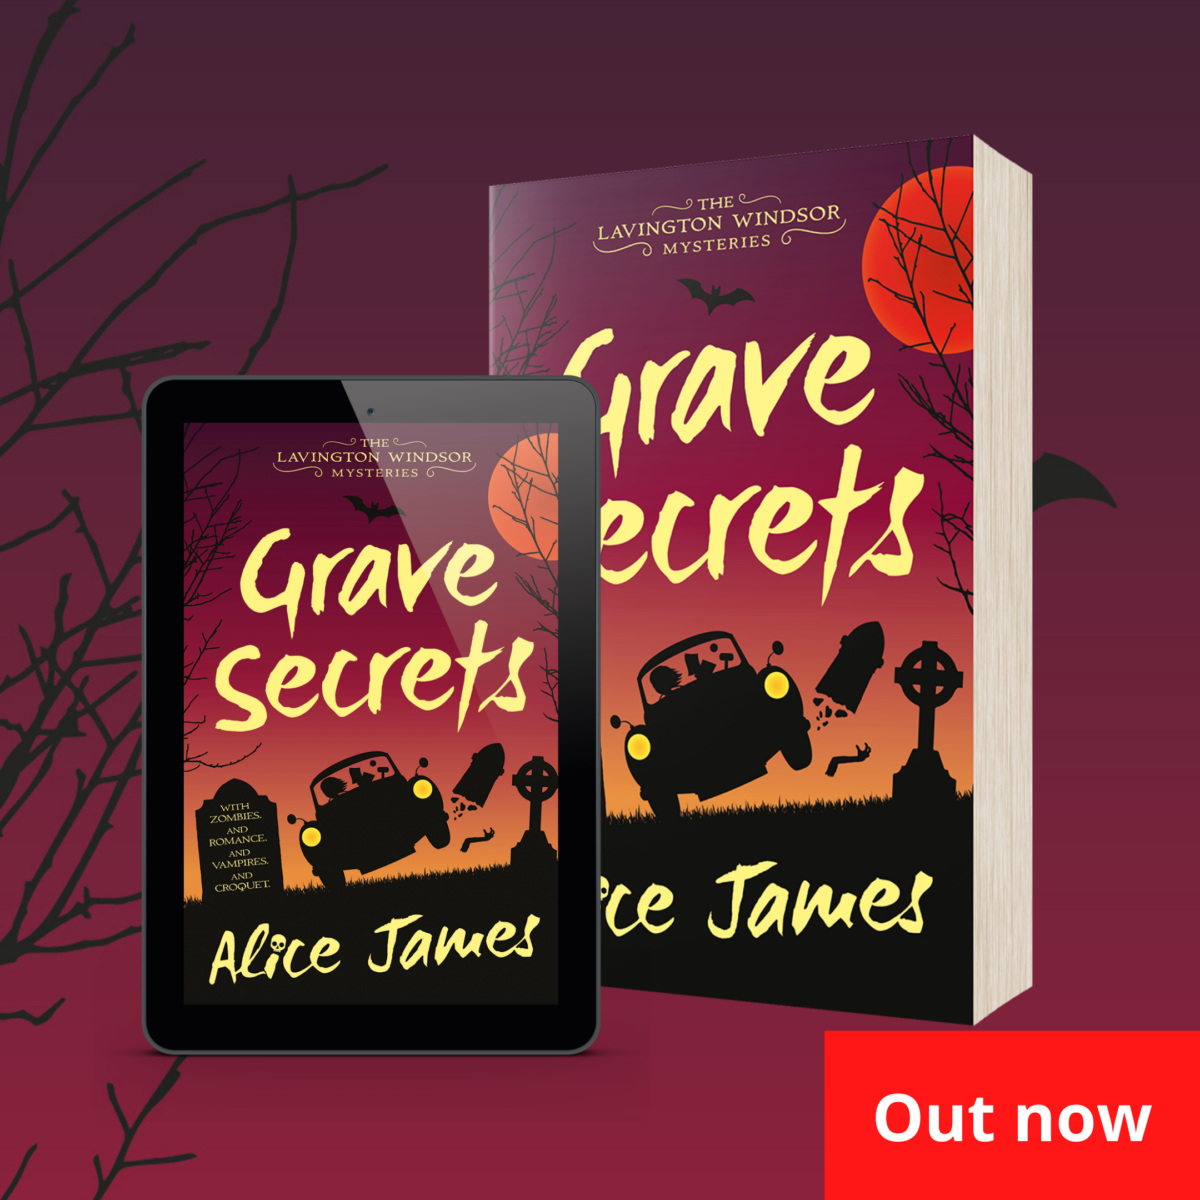 OUT NOW: Grave Secrets by Alice James